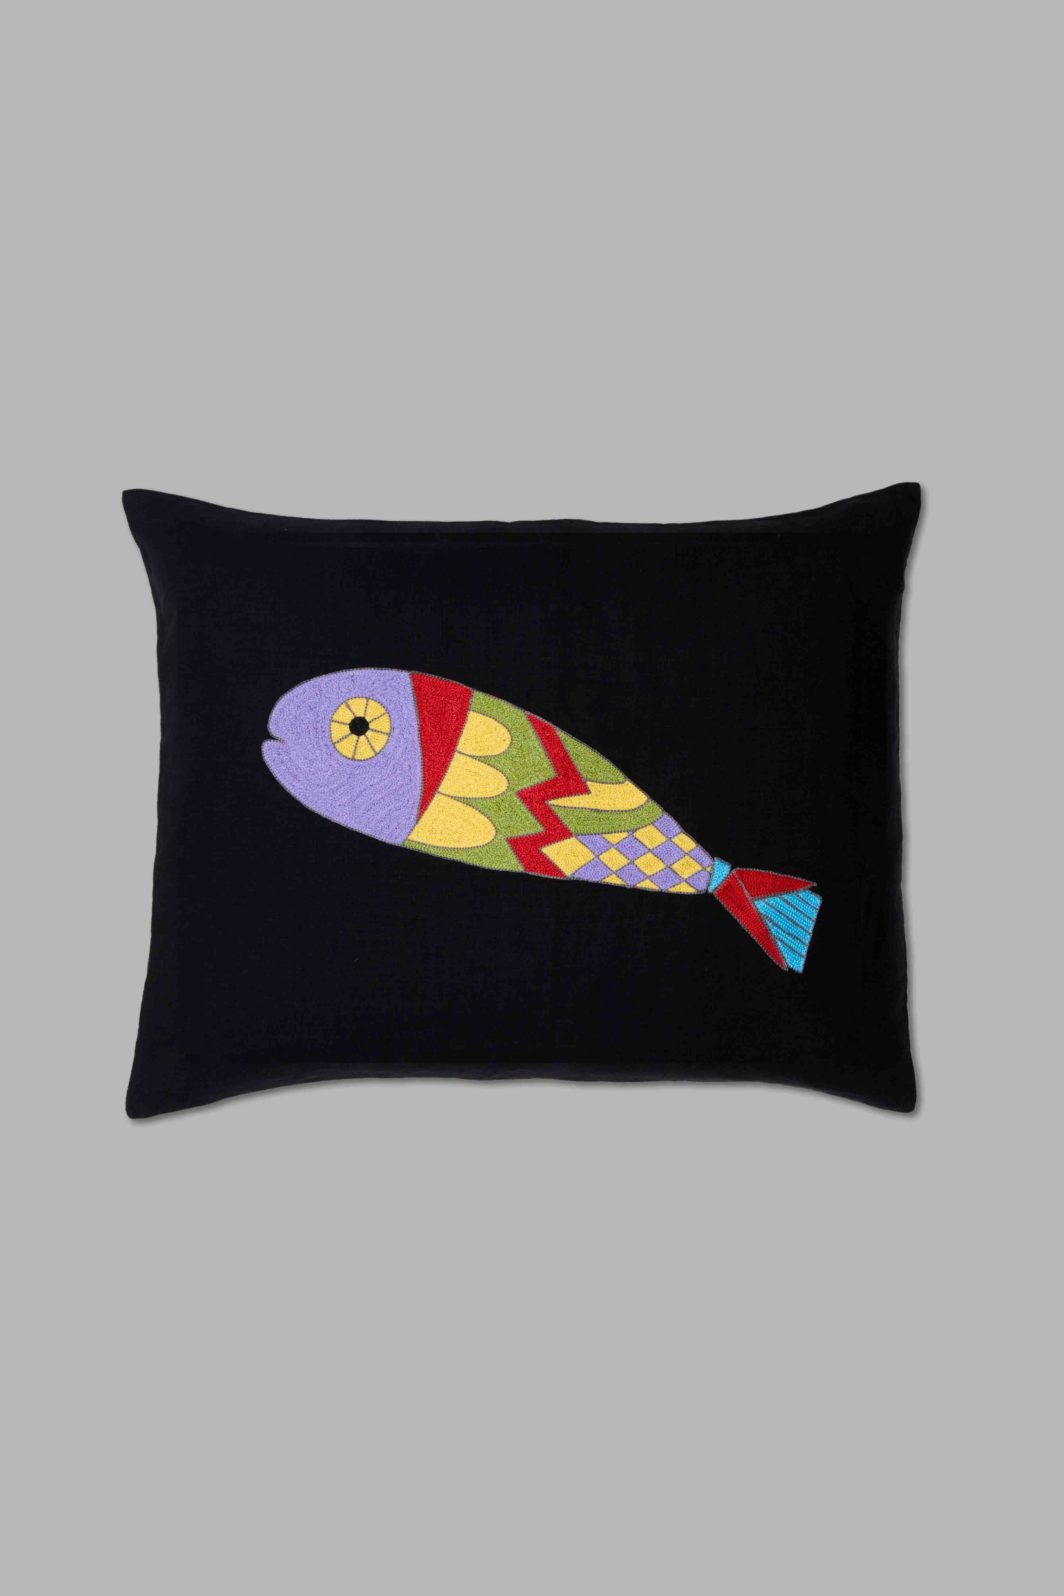 CUBIST FISH CUSHION